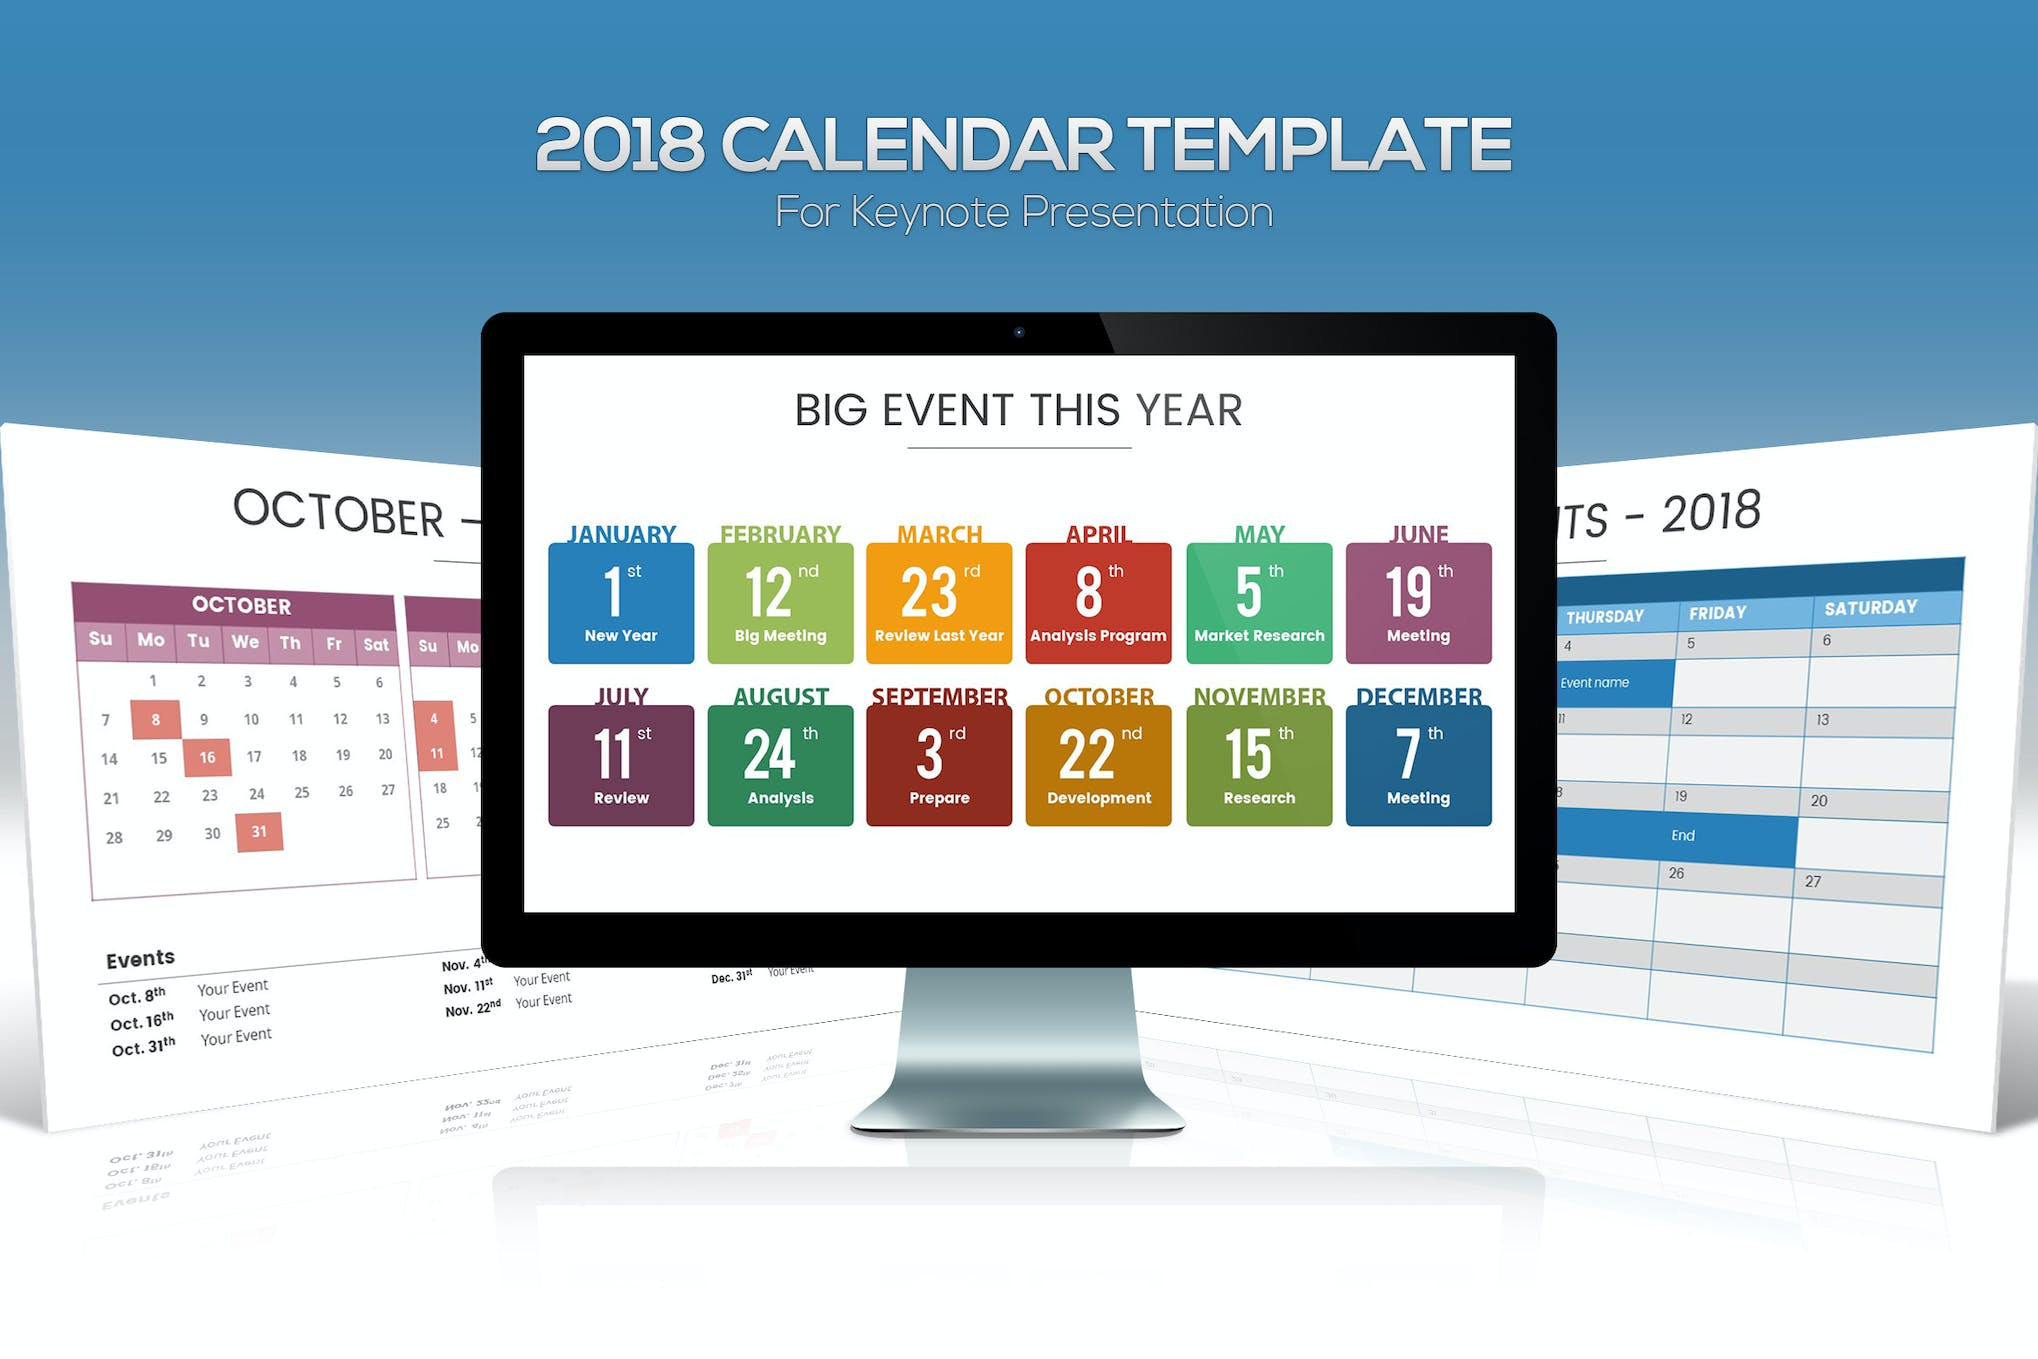 2018 Calendar Keynote Template By Slidefactory On Envato Elements